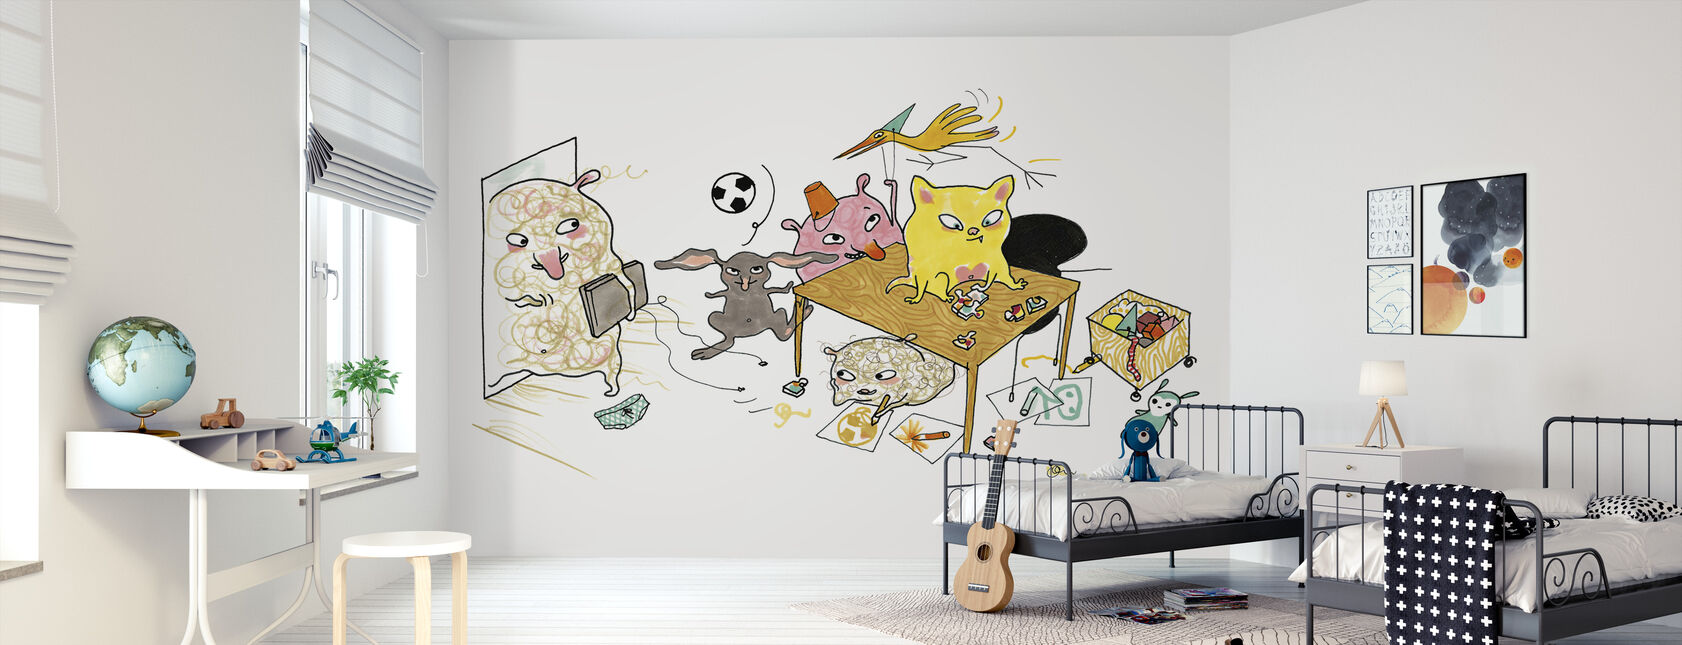 Who plays indoors - Wallpaper - Kids Room